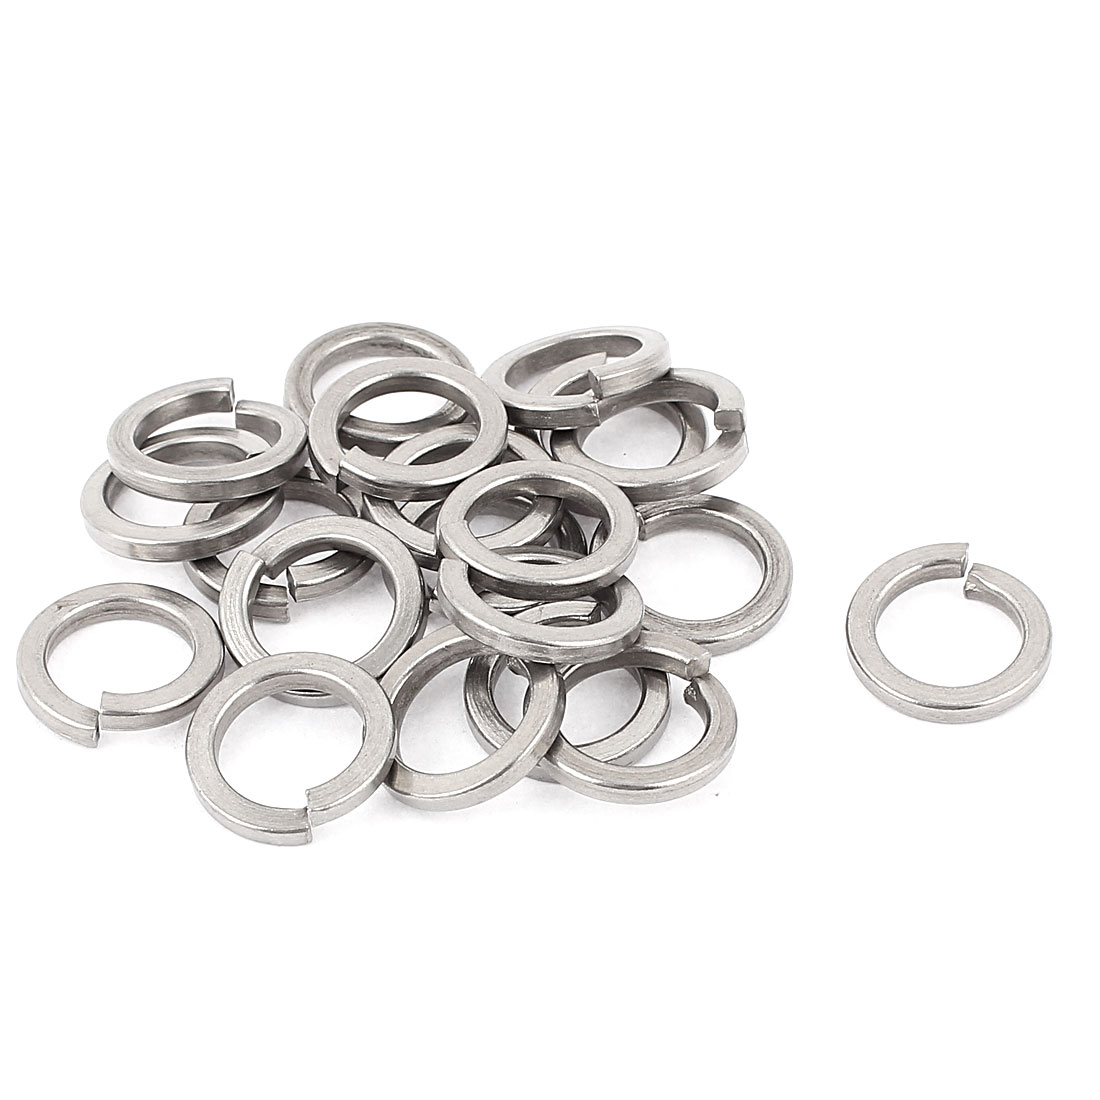 20pcs 304 Stainless Steel M14 Spring Washer Split Lock Washers Silver Tone